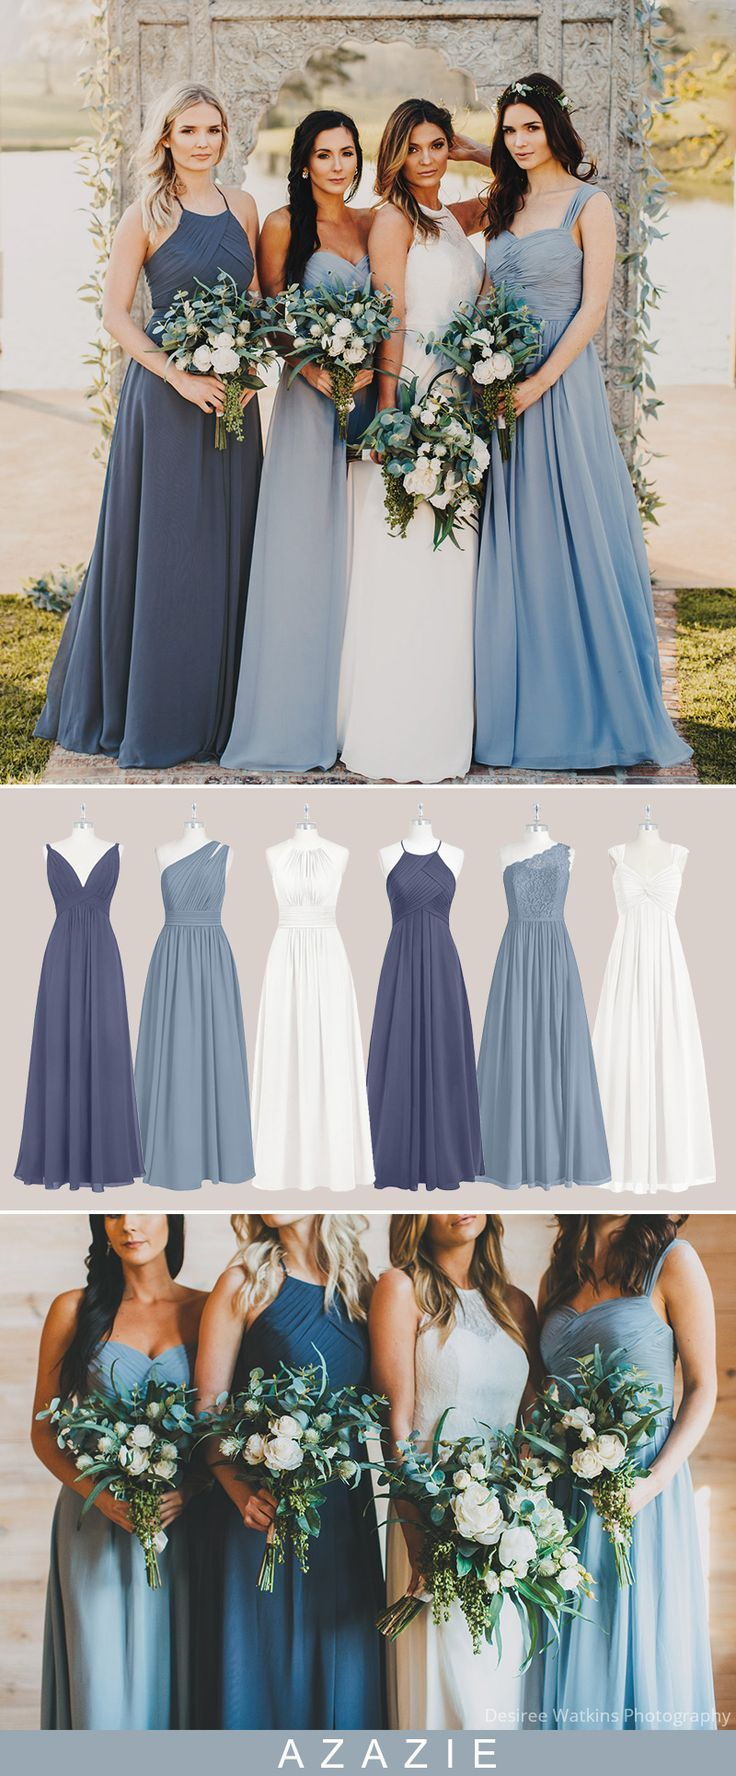 Dusty Blue A Calming Middle Ground Combination Of Powder Blue And Gray Is A Versati Dusty Blue Bridesmaid Dresses Wedding Bridesmaids Blue Bridesmaid Dresses [ 1776 x 736 Pixel ]